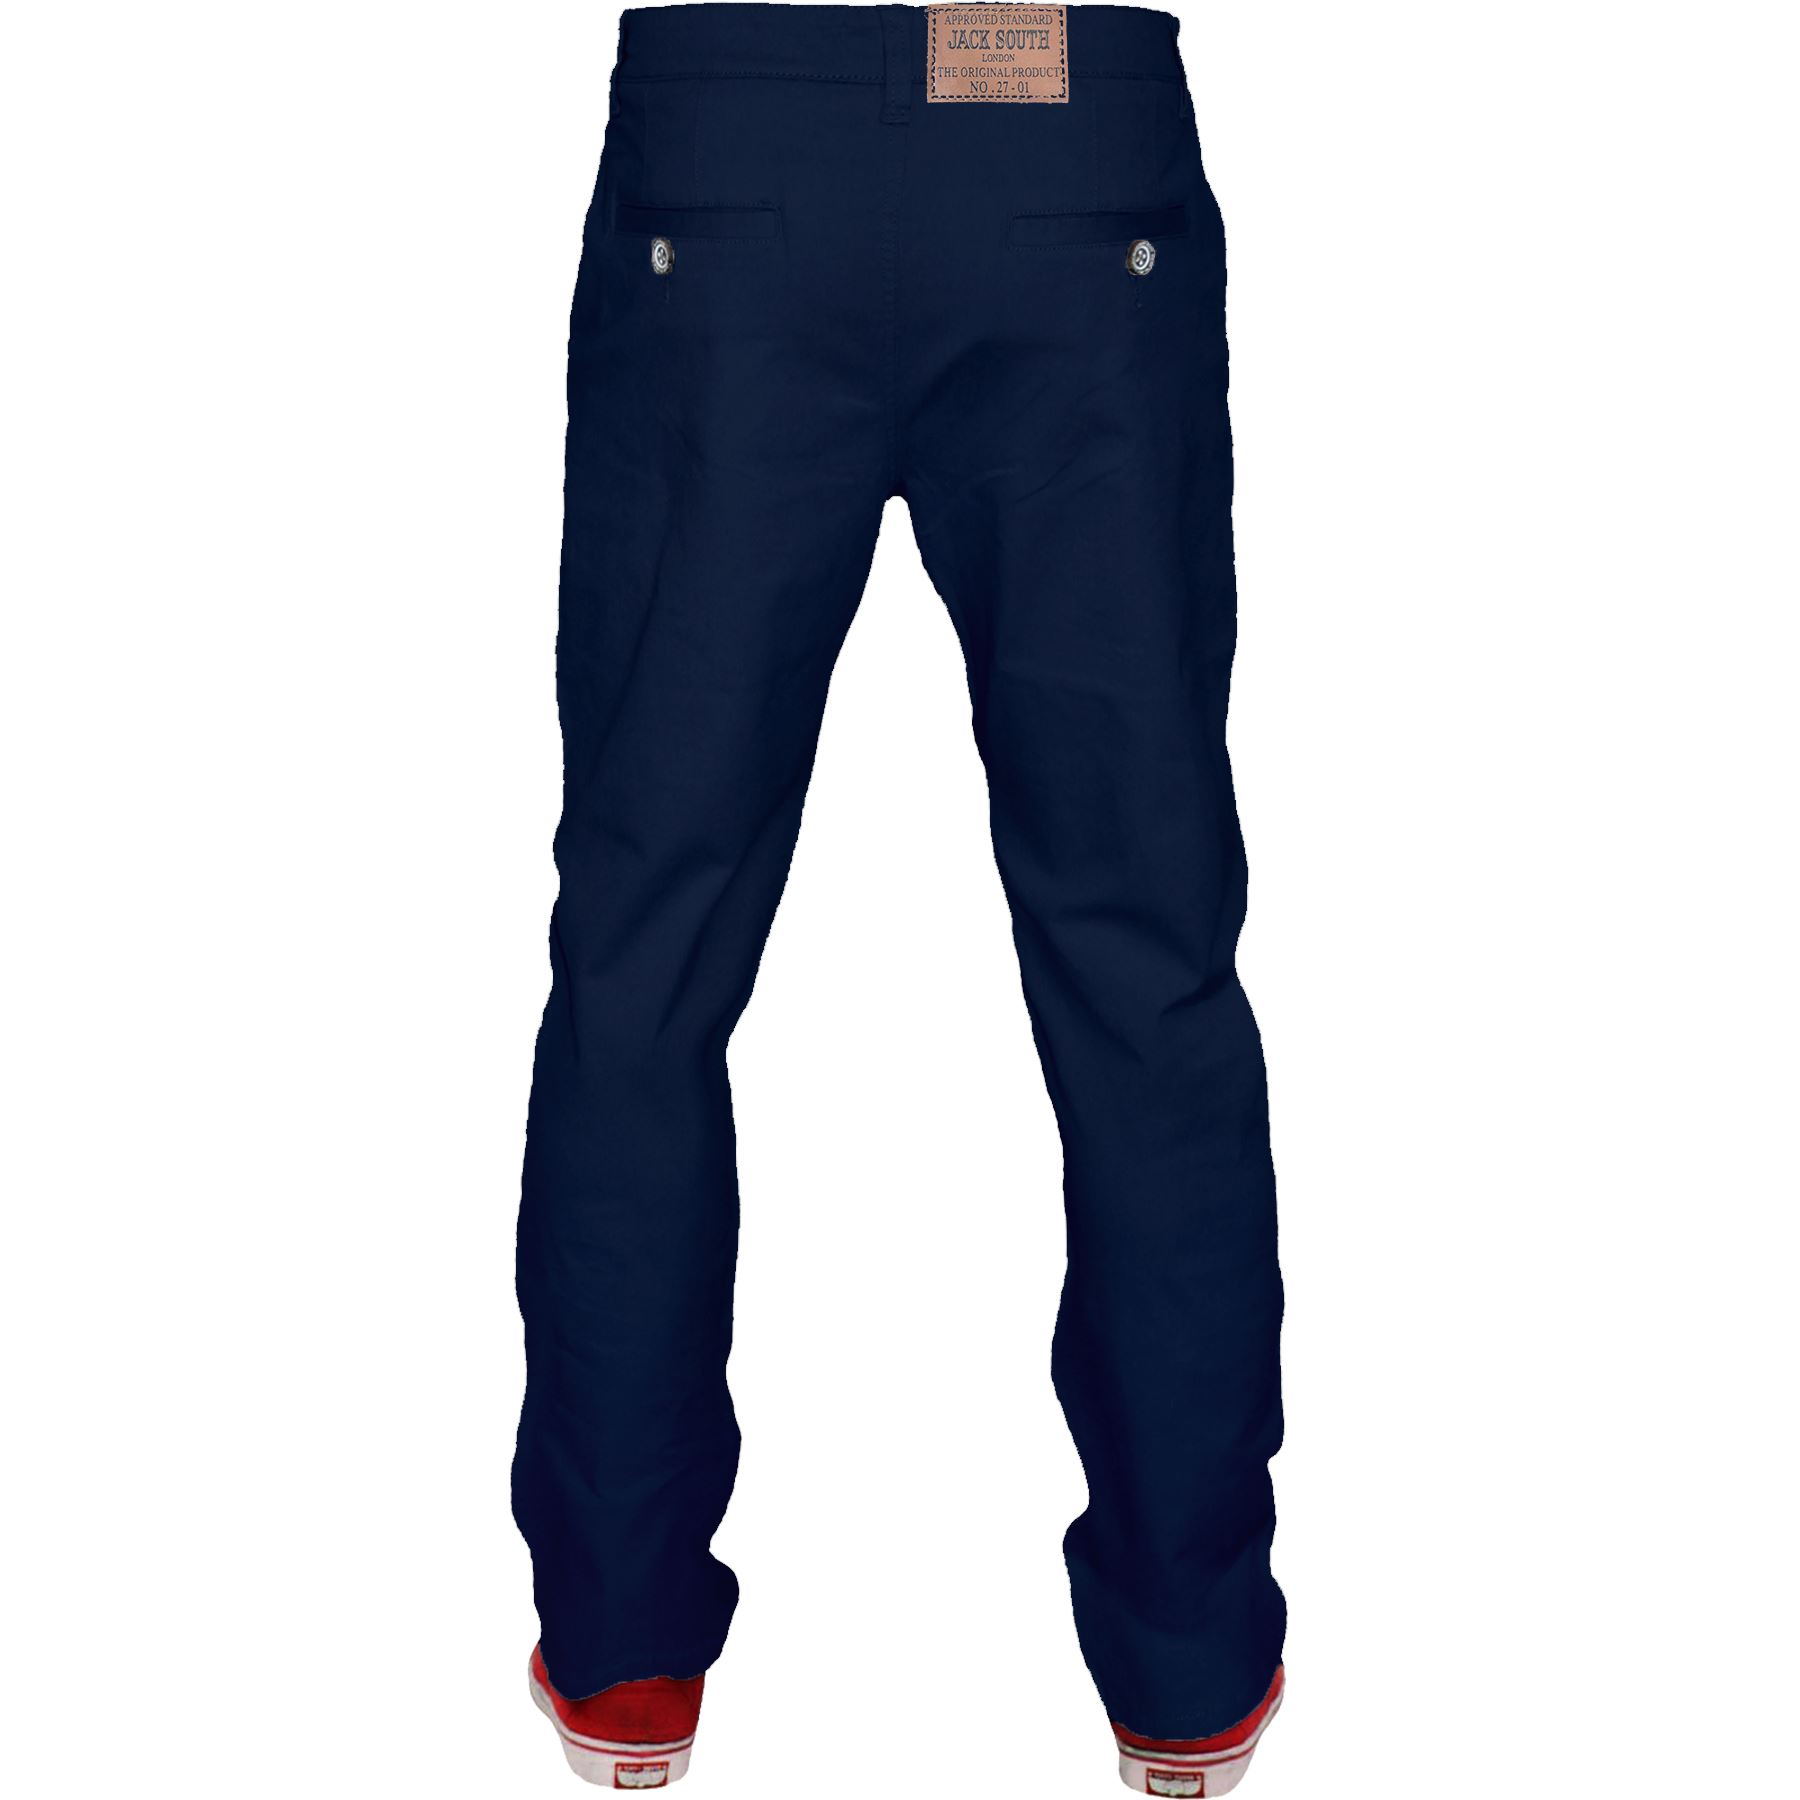 Mens-Chino-Classic-Regular-Fit-Trouser-Casual-Stretch-Spandex-Pants-Size-32-40 thumbnail 16